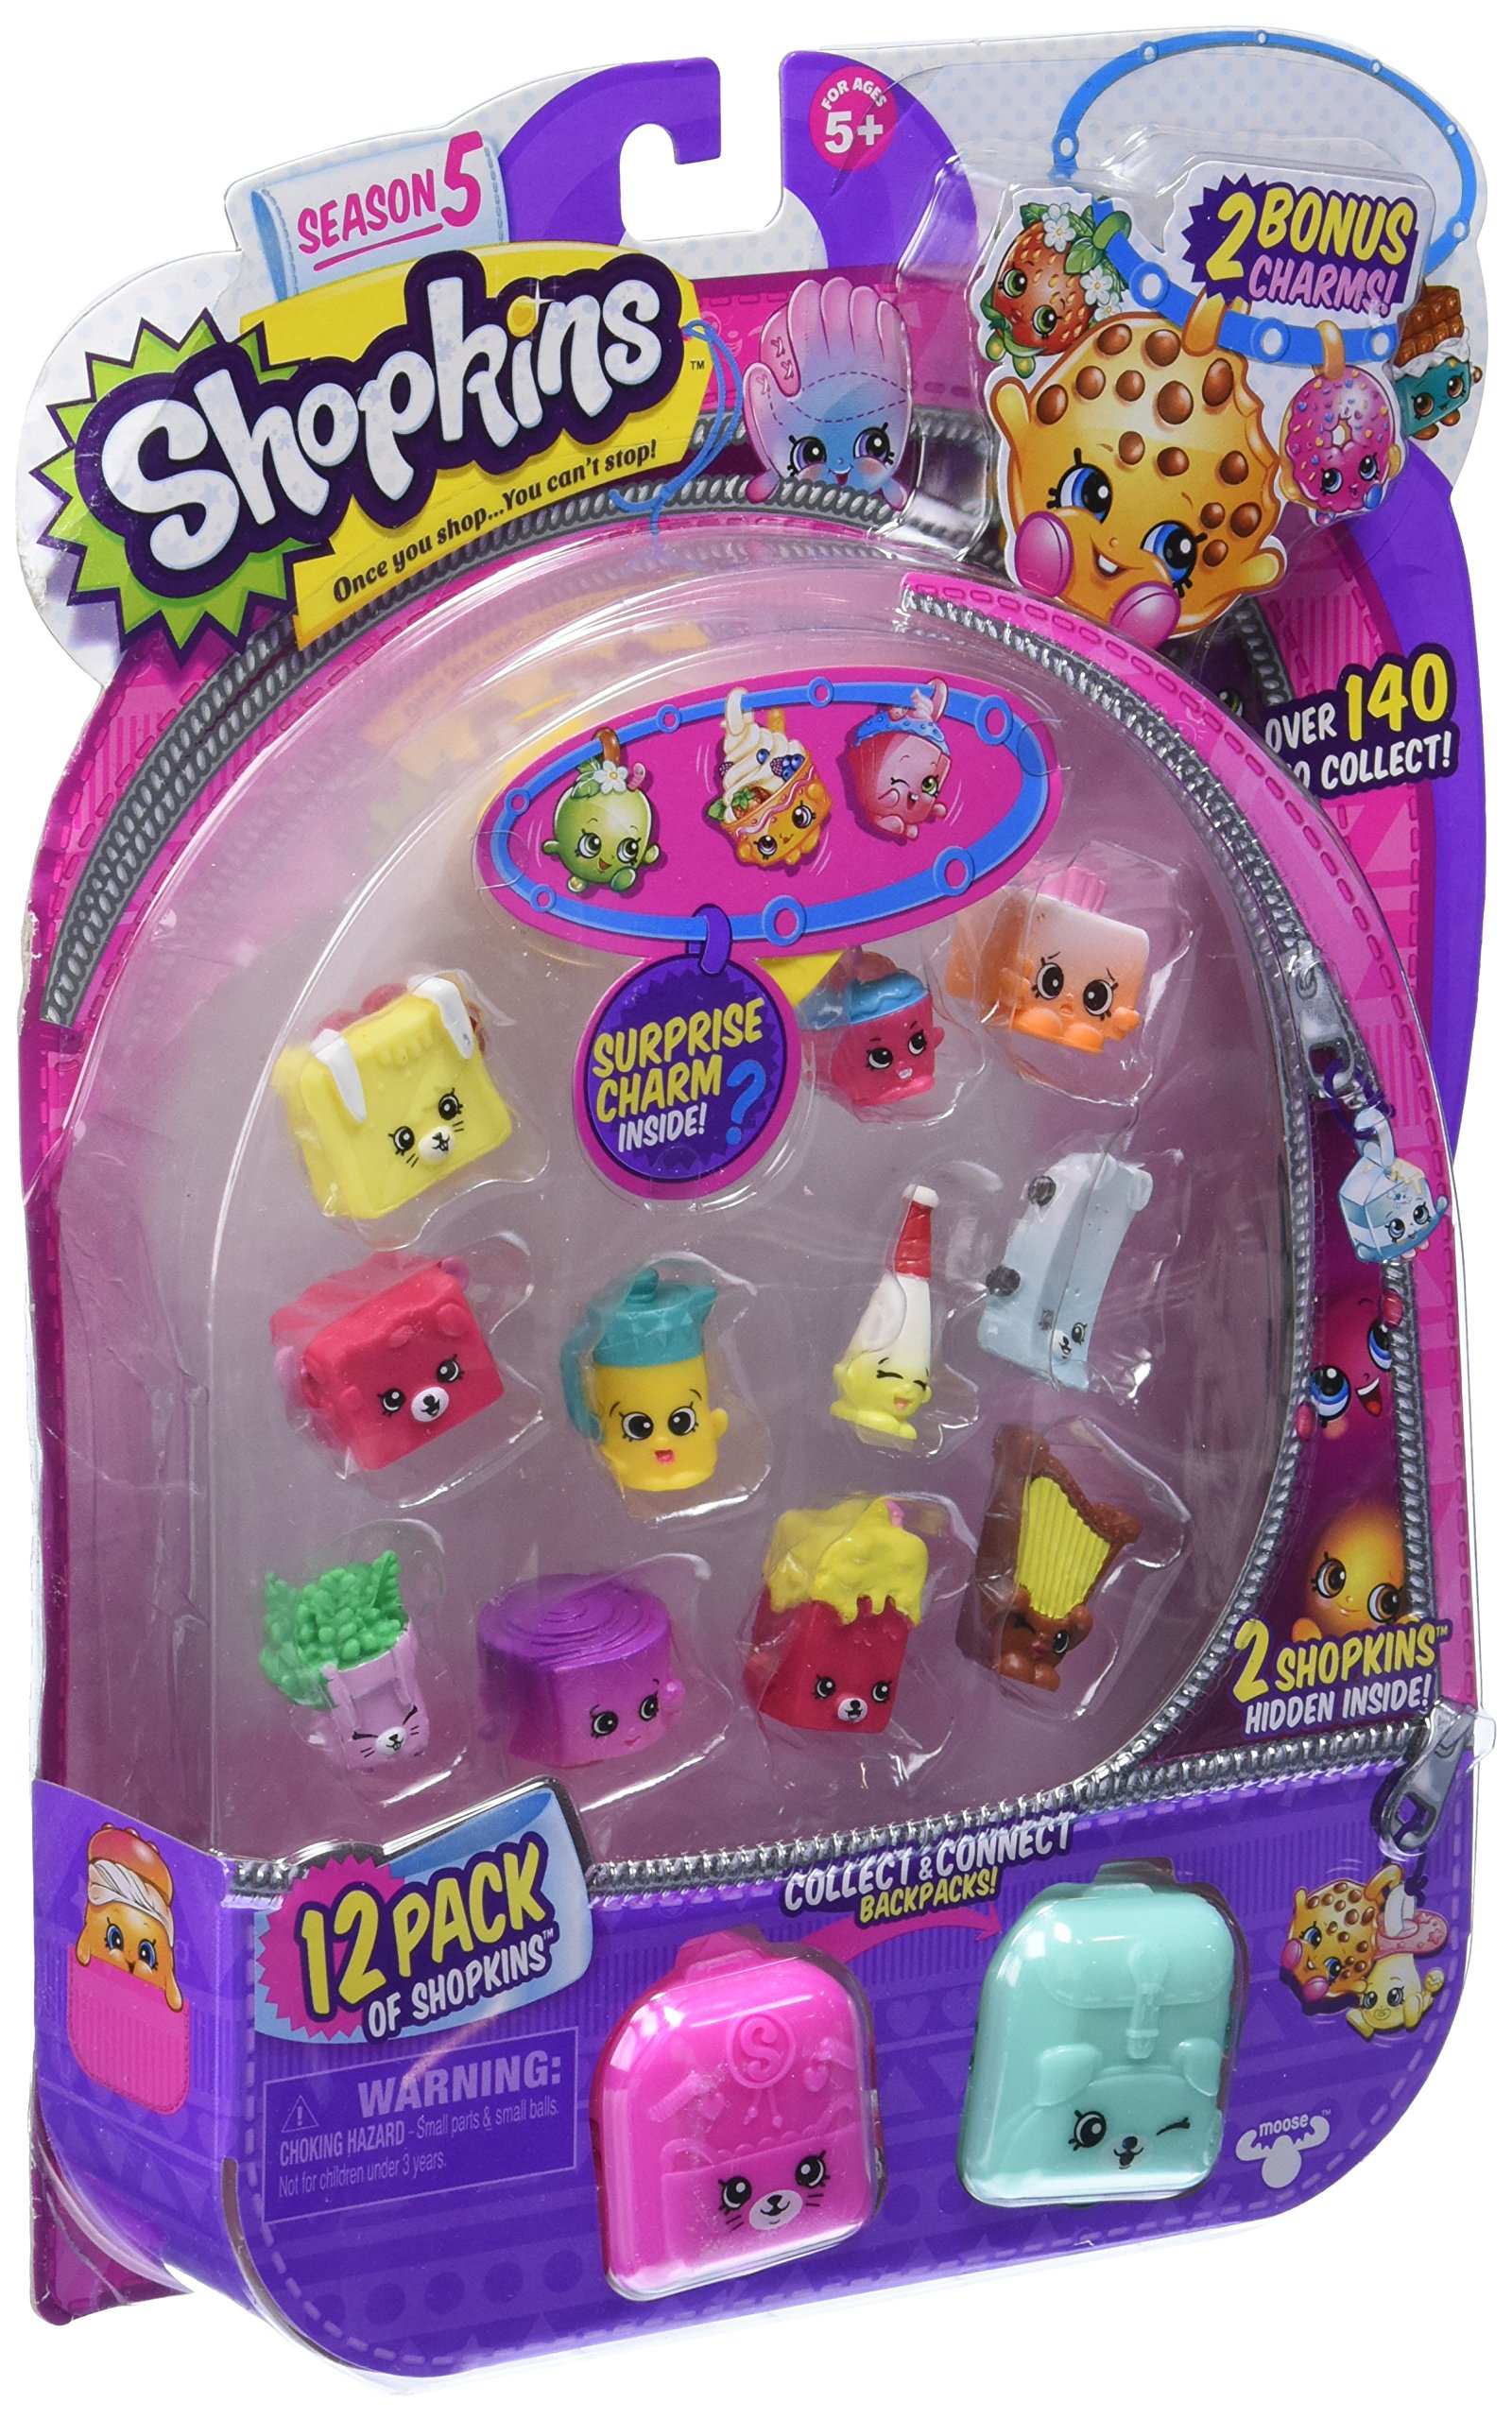 Toys For Girls 9 12 From Smith S : Amazon shopkins so cool fridge toys games